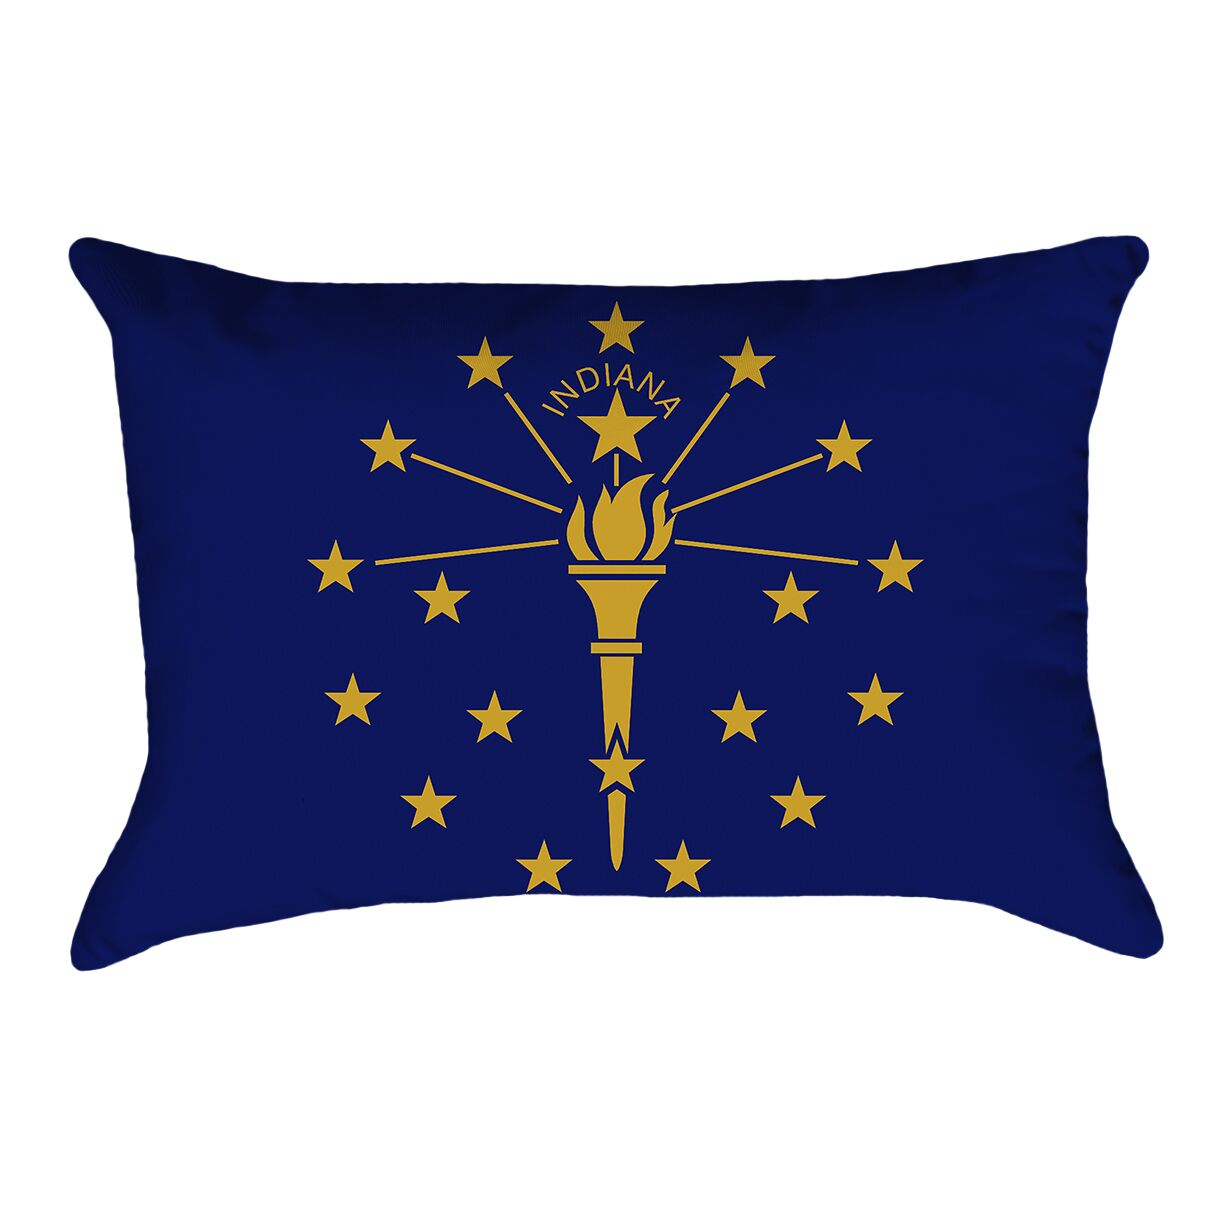 Centers Indiana Flag Pillow Material/Product Type: Faux Suede Double Sided Print/Lumbar Pillow